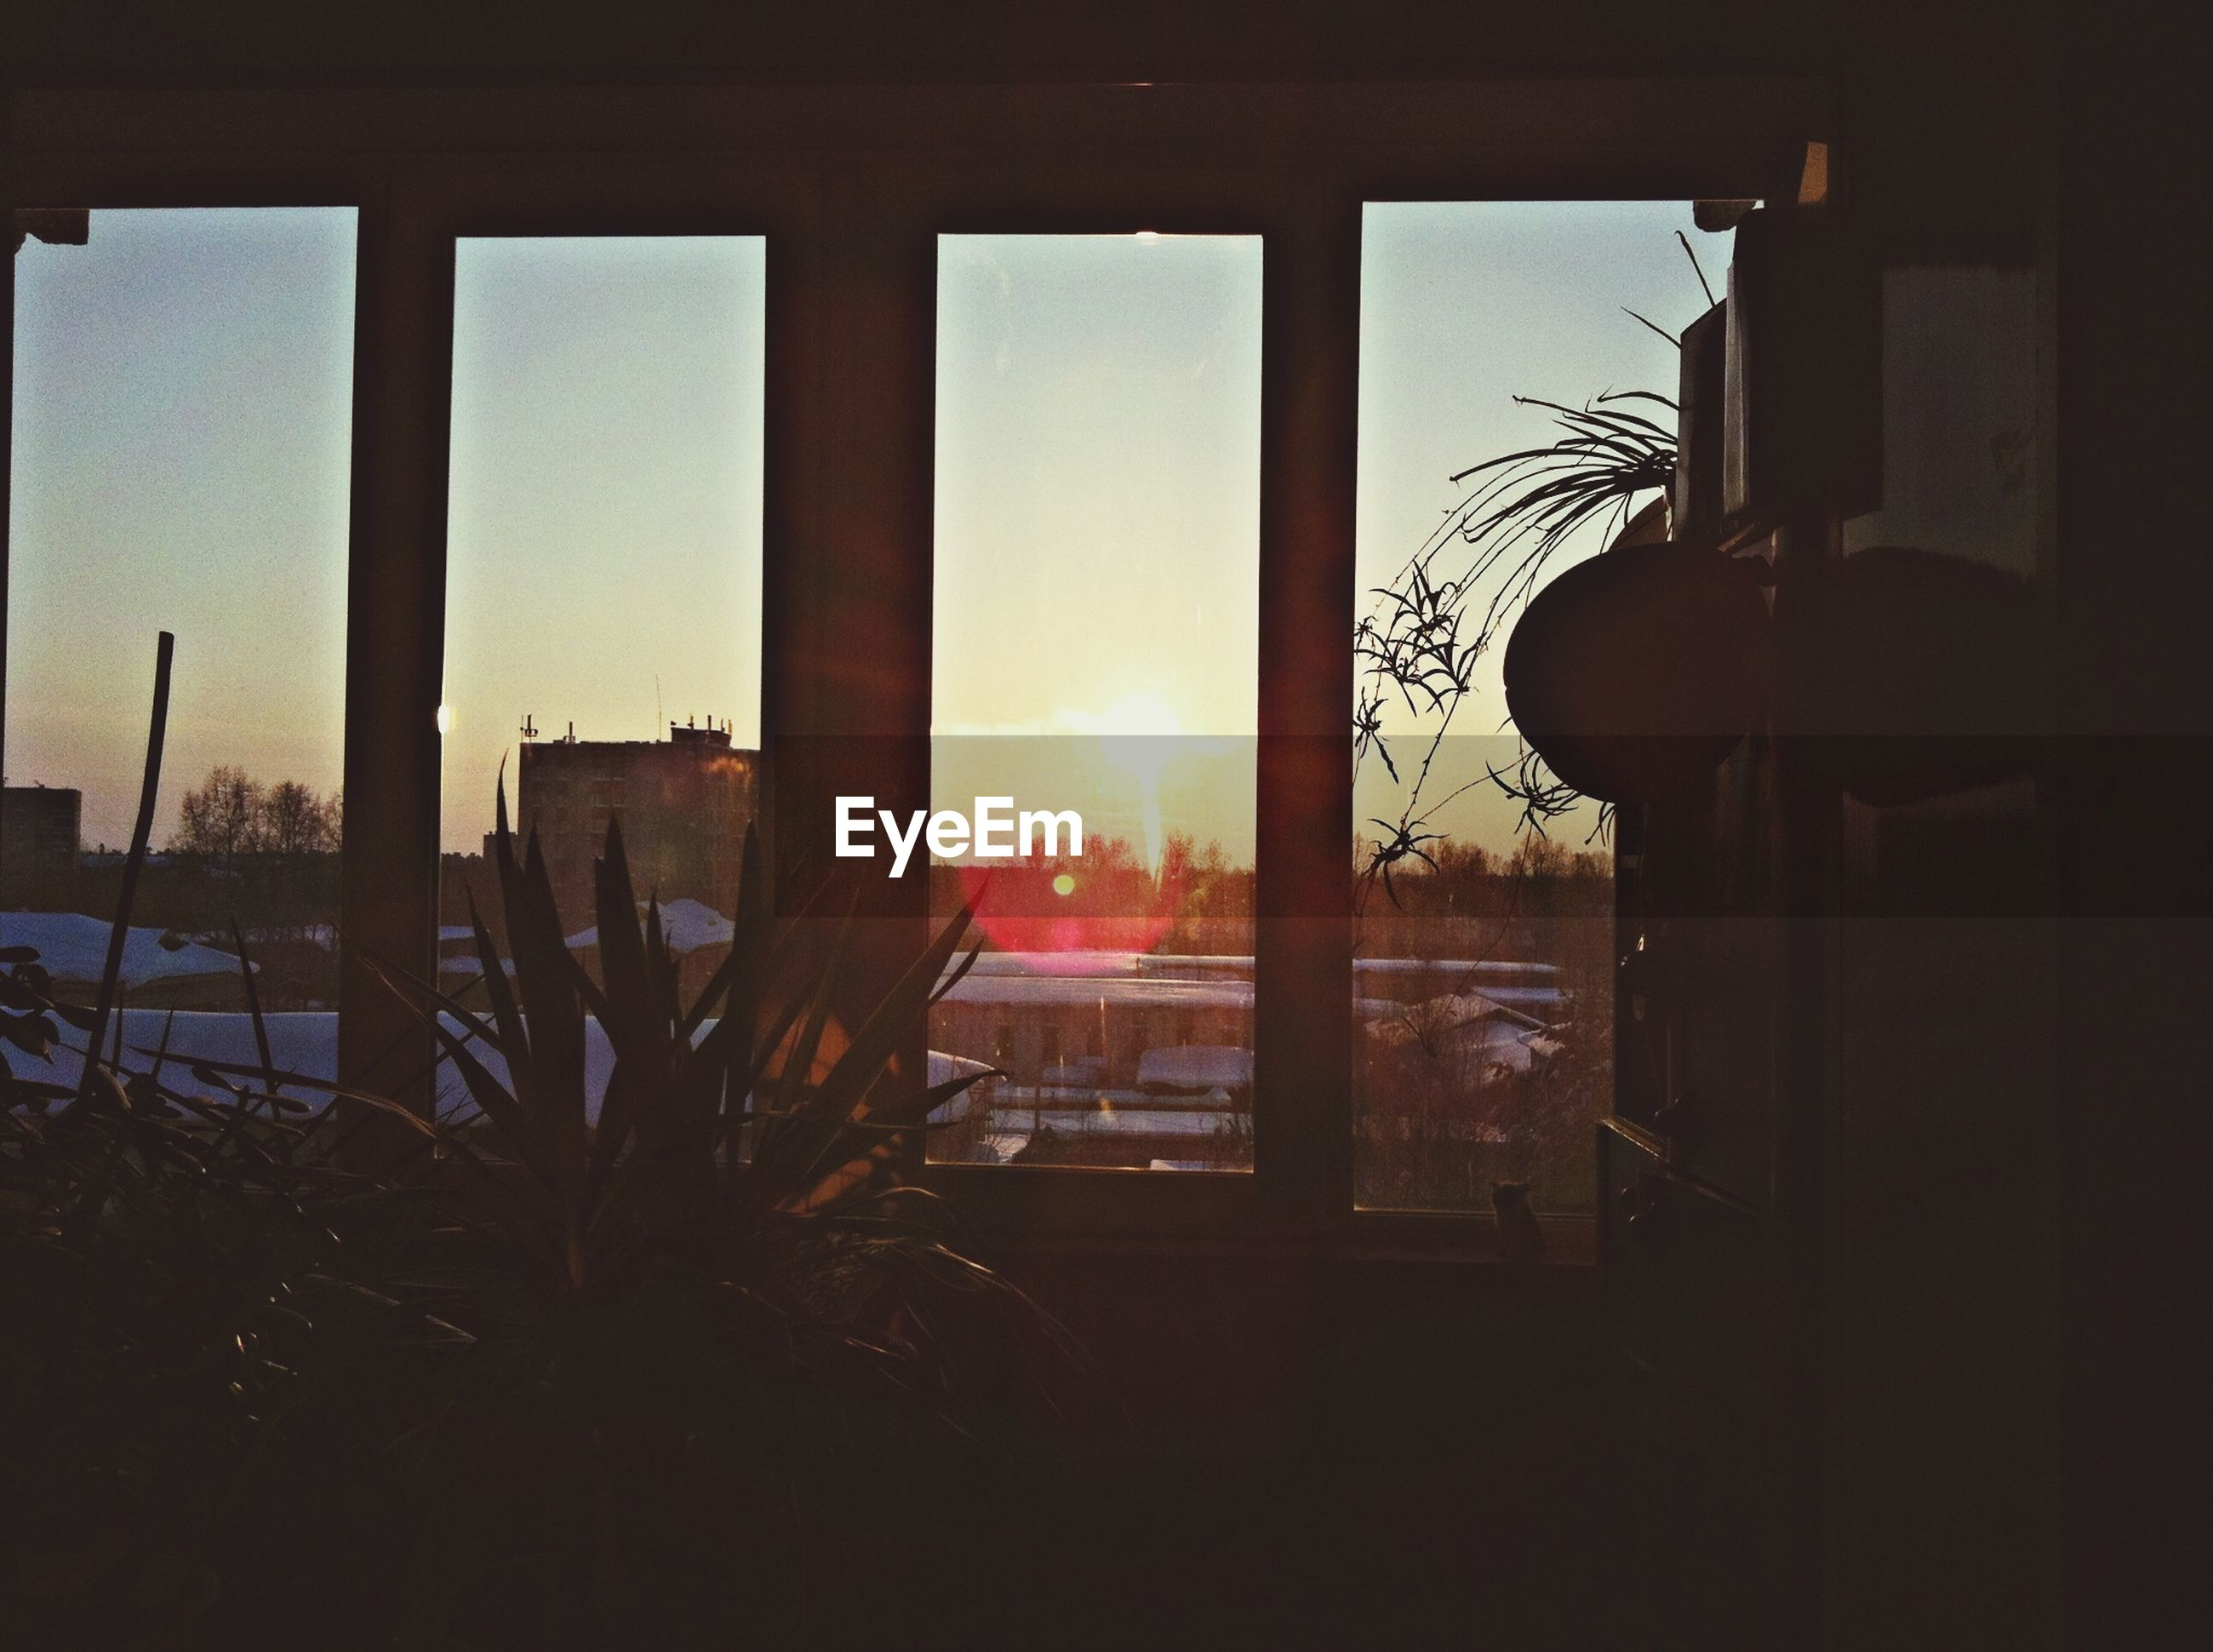 window, indoors, built structure, architecture, sunset, sunlight, silhouette, glass - material, building exterior, sun, transparent, house, home interior, sky, potted plant, city, looking through window, window sill, sunbeam, no people